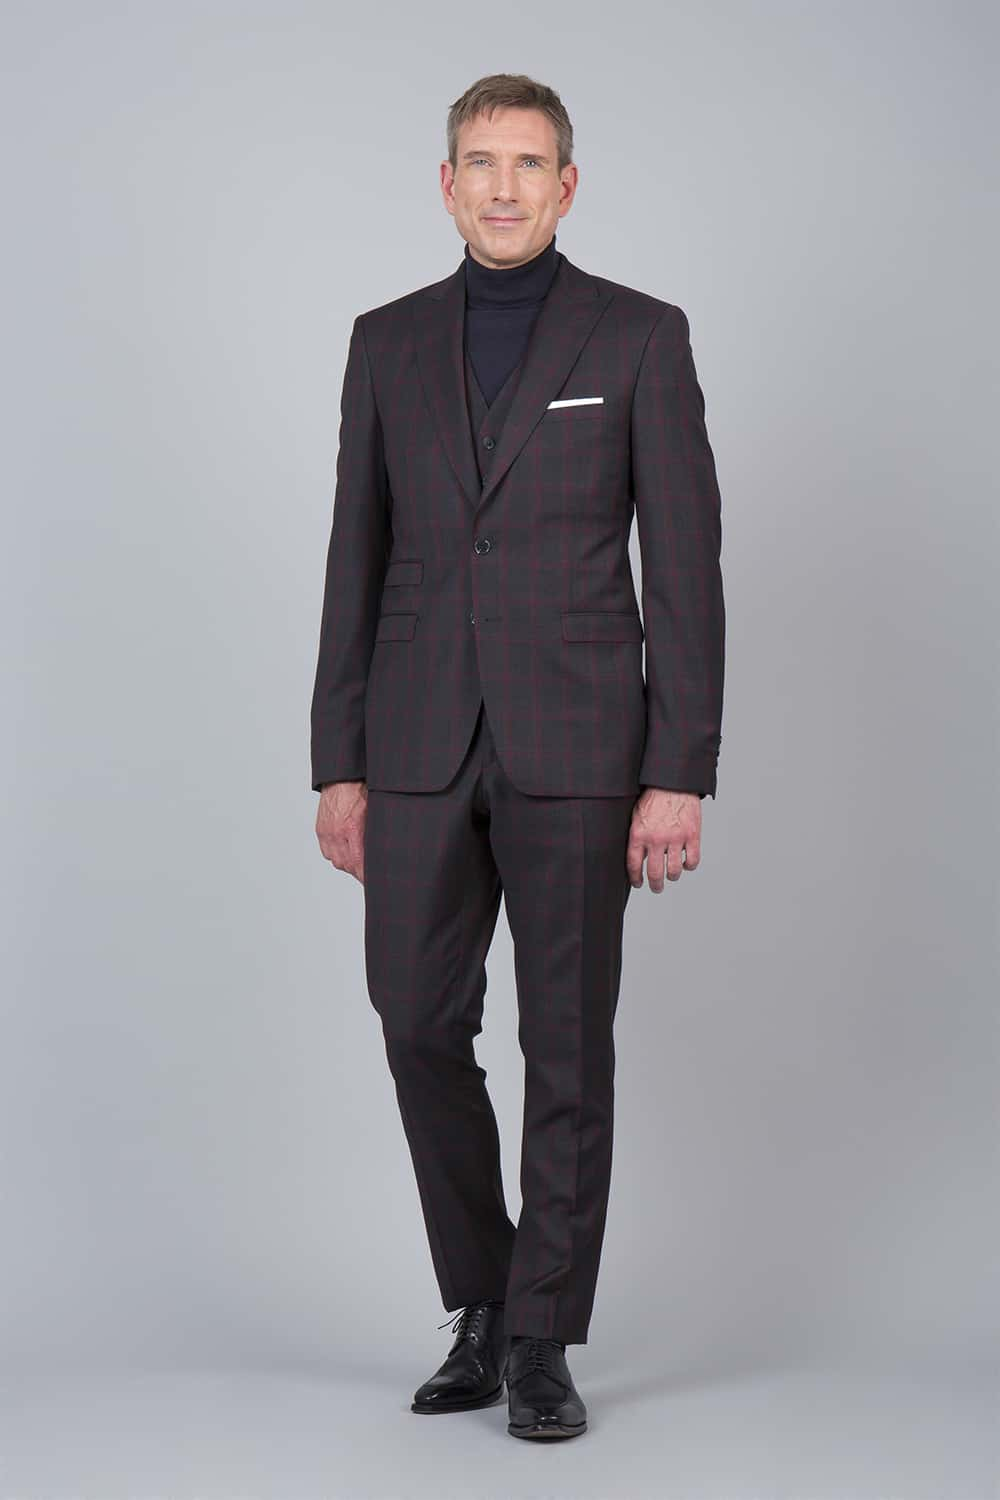 homme costume carrzaux 3p paris